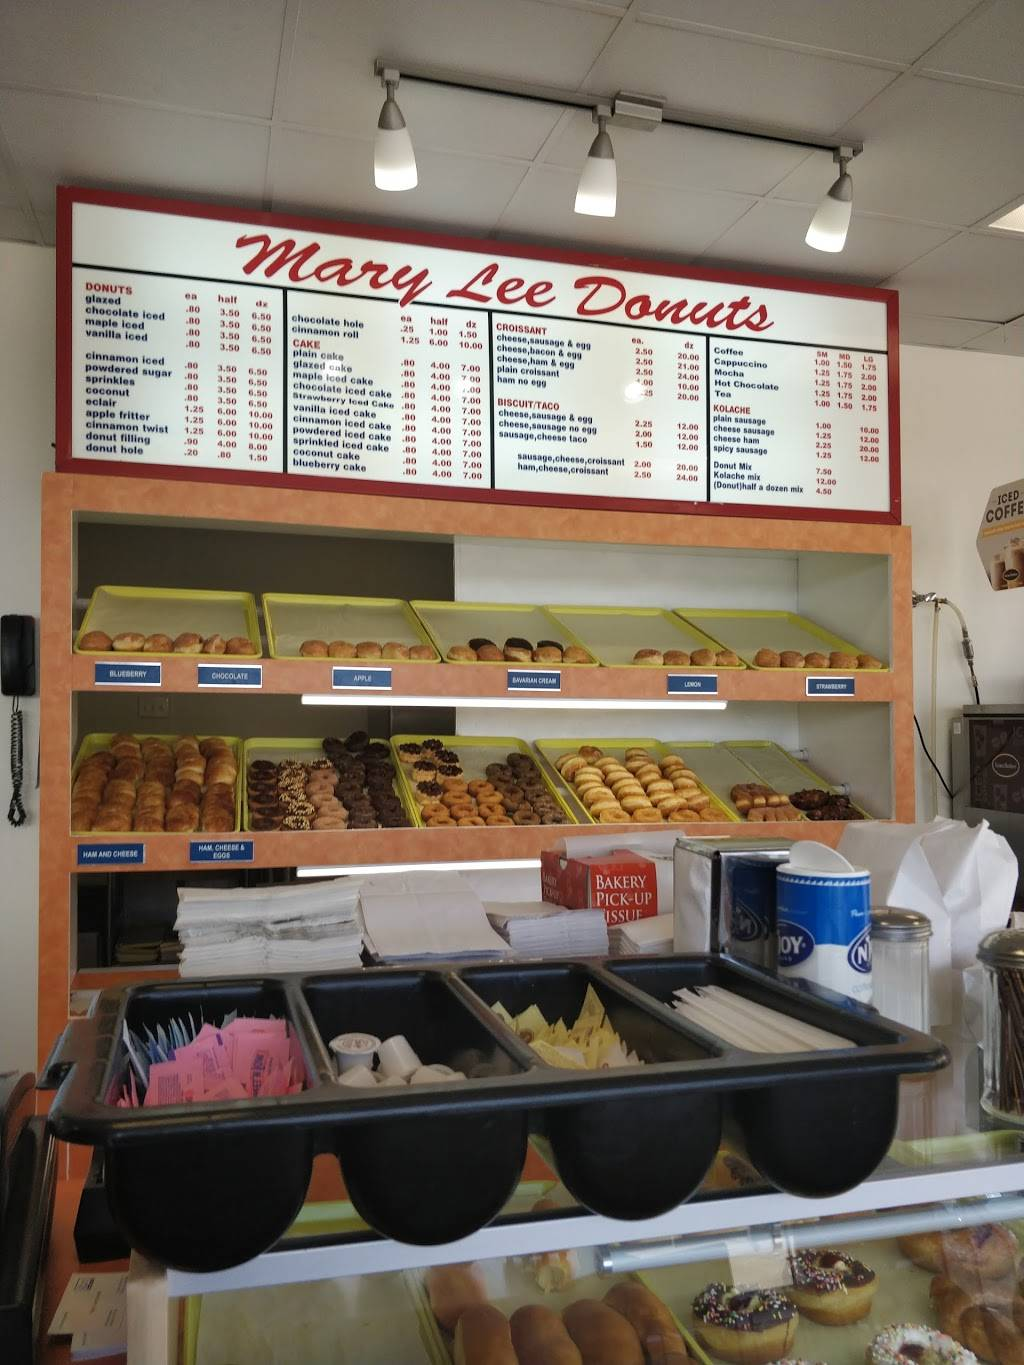 Mary Lee Donut Shops | bakery | 6150 Gulf Fwy, Houston, TX 77023, USA | 7139282869 OR +1 713-928-2869